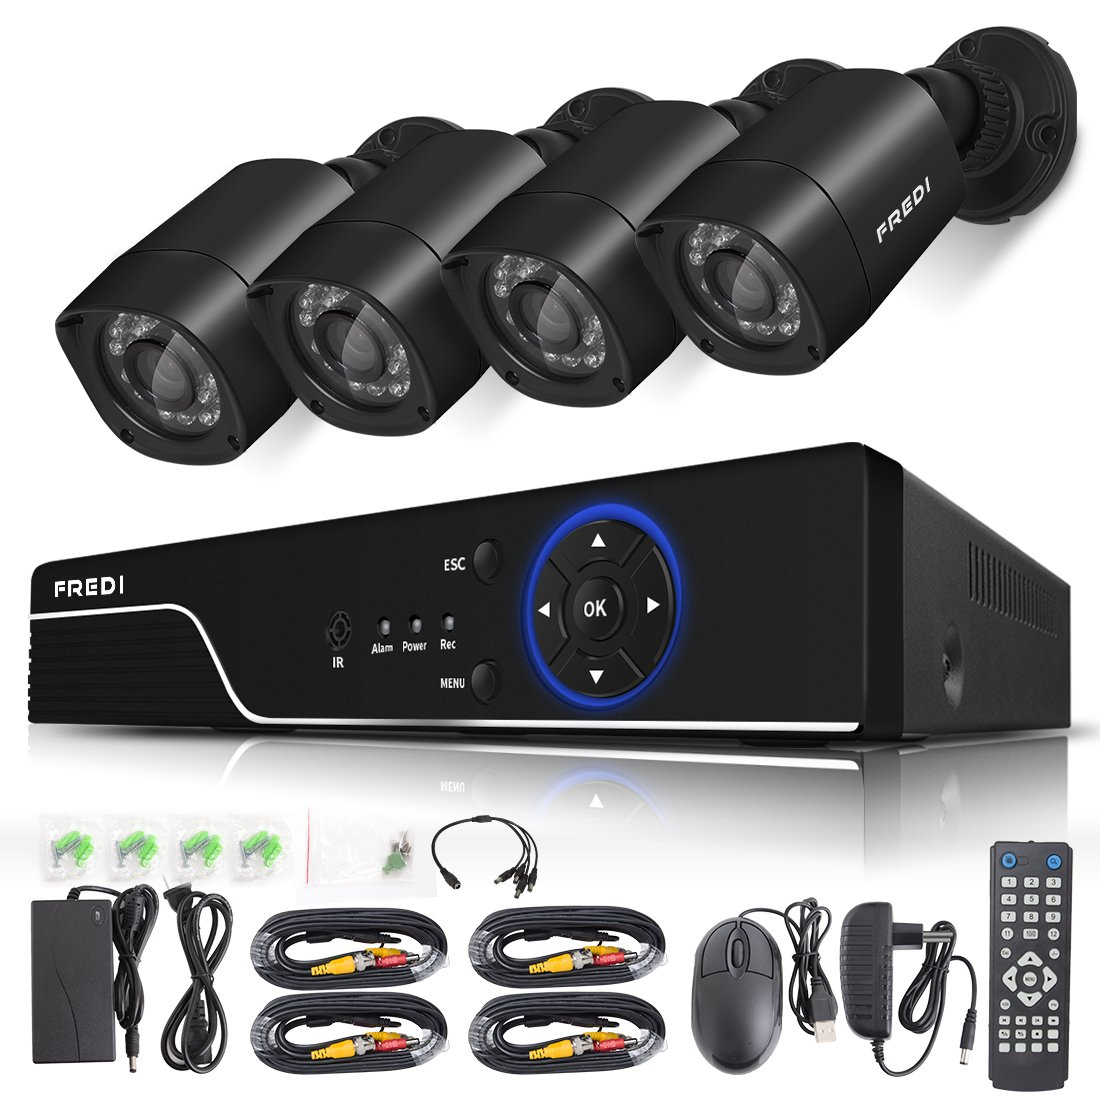 FREDI Security Camera System 8-Channel HD-TVI 1080P Lite Video Security System DVR and (4) 1.0MP Indoor/Outdoor Weatherproof Cameras with IR Night Vision LEDs- Without HDD by FREDI (Image #1)